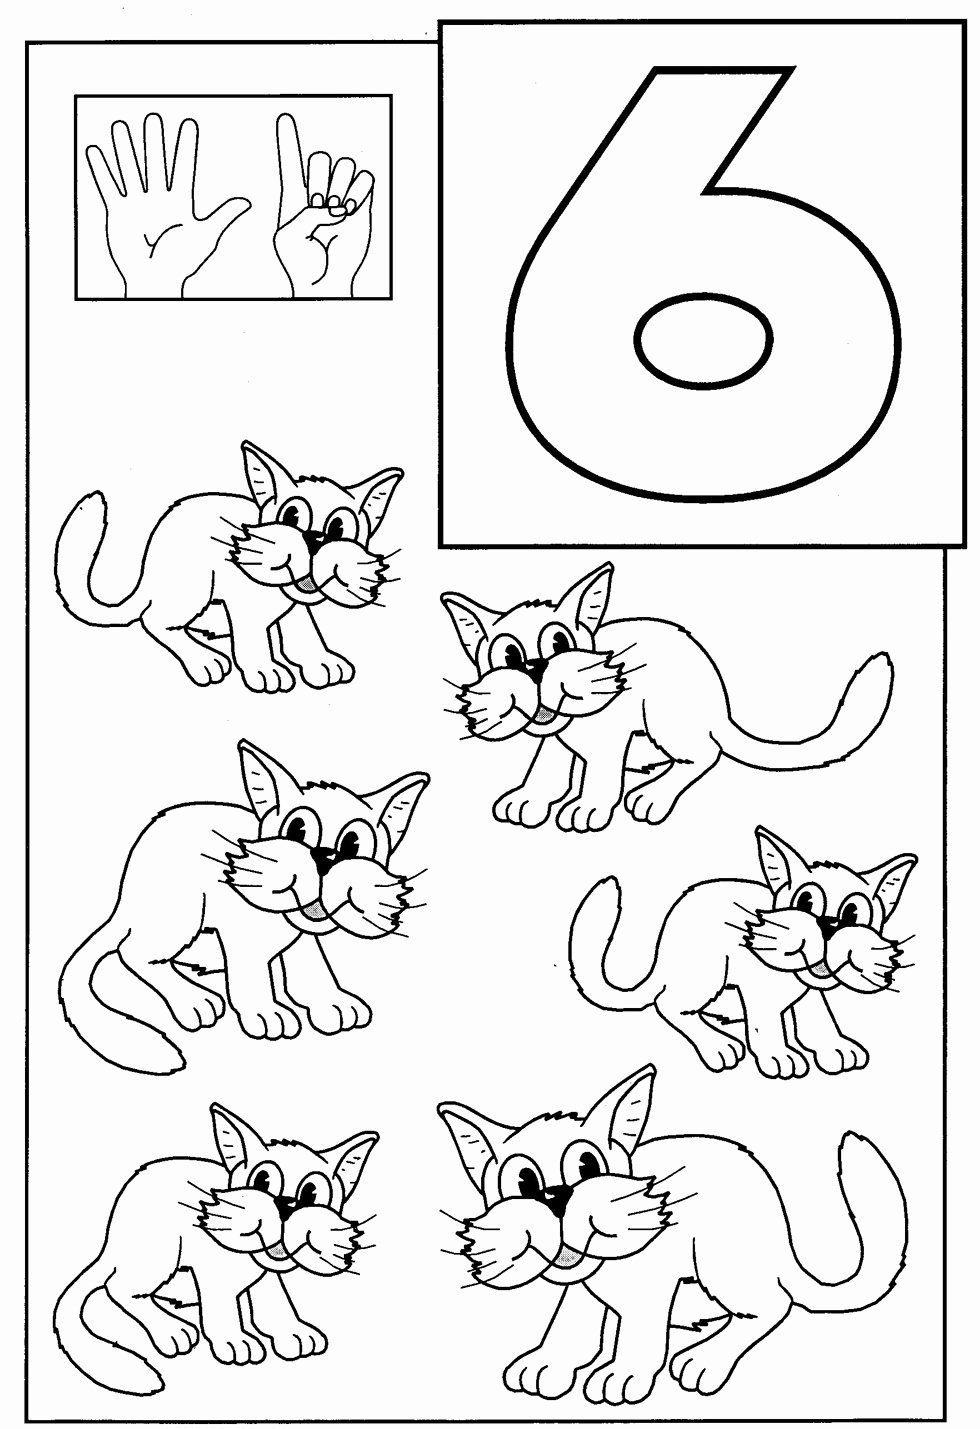 Number 6 Coloring Page Best Of 47 Number 6 Coloring Pages Free Number 6 Template Coloring Pages Inspirational Coloring Pages For Kids Bear Coloring Pages